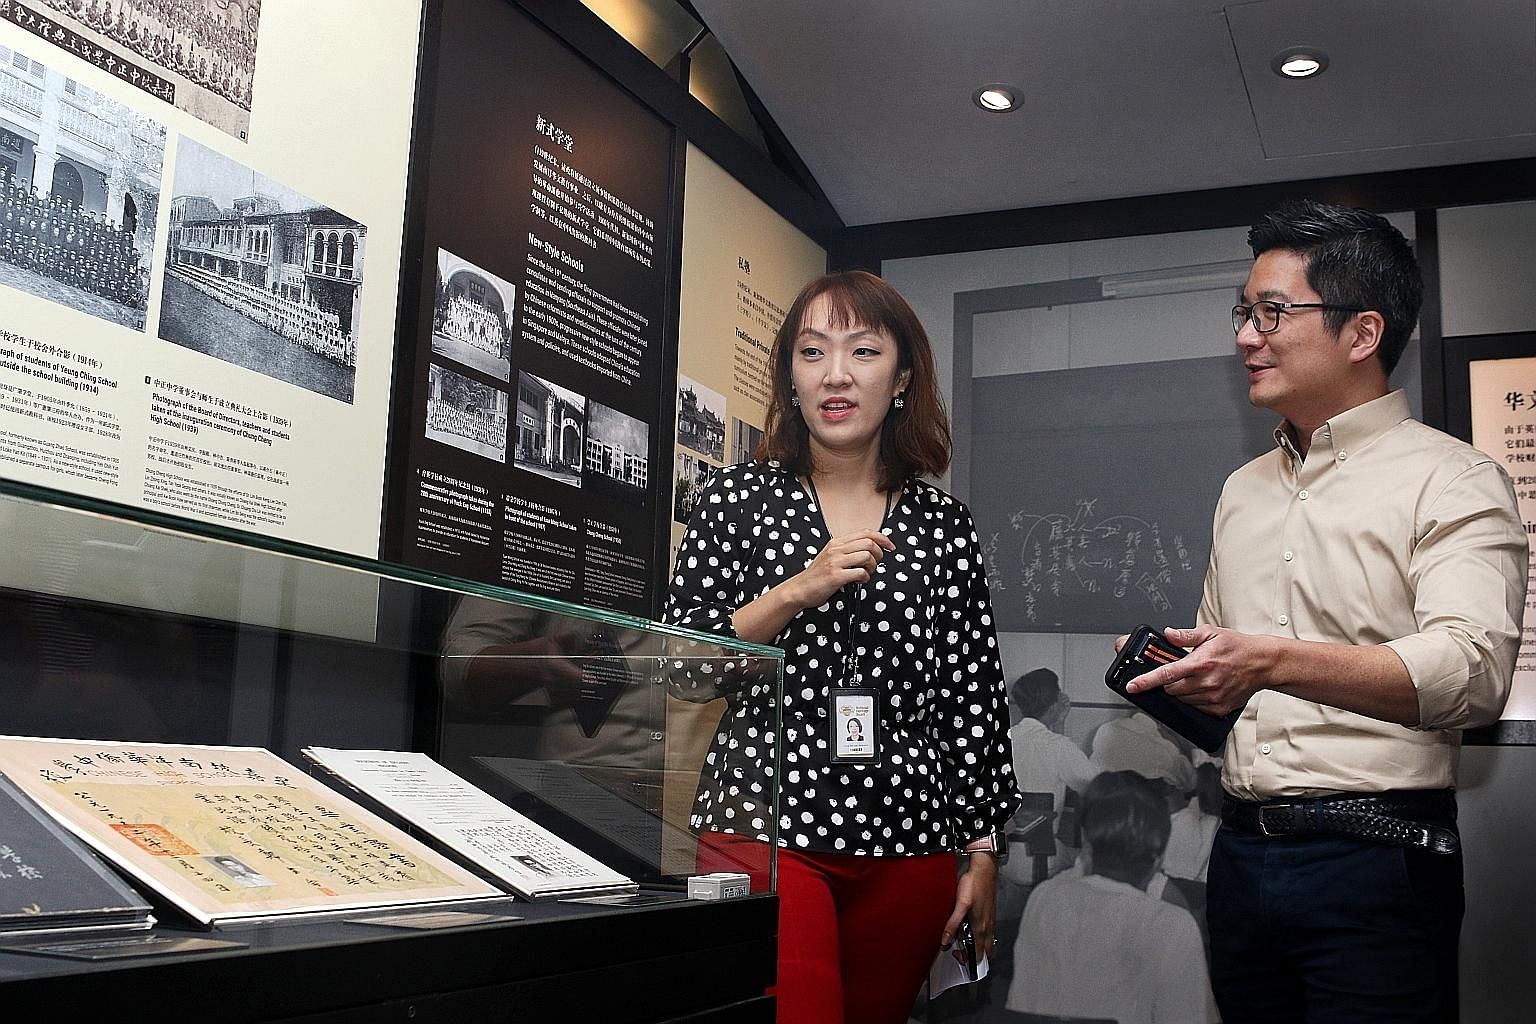 Ms Jermaine Chua, curator of Sun Yat Sen Nanyang Memorial Hall, and Mr Alvin Tan, deputy chief executive for policy and community at the National Heritage Board, introducing an exhibit at Gallery 4 - Chinese Business Pioneers yesterday. The revamped